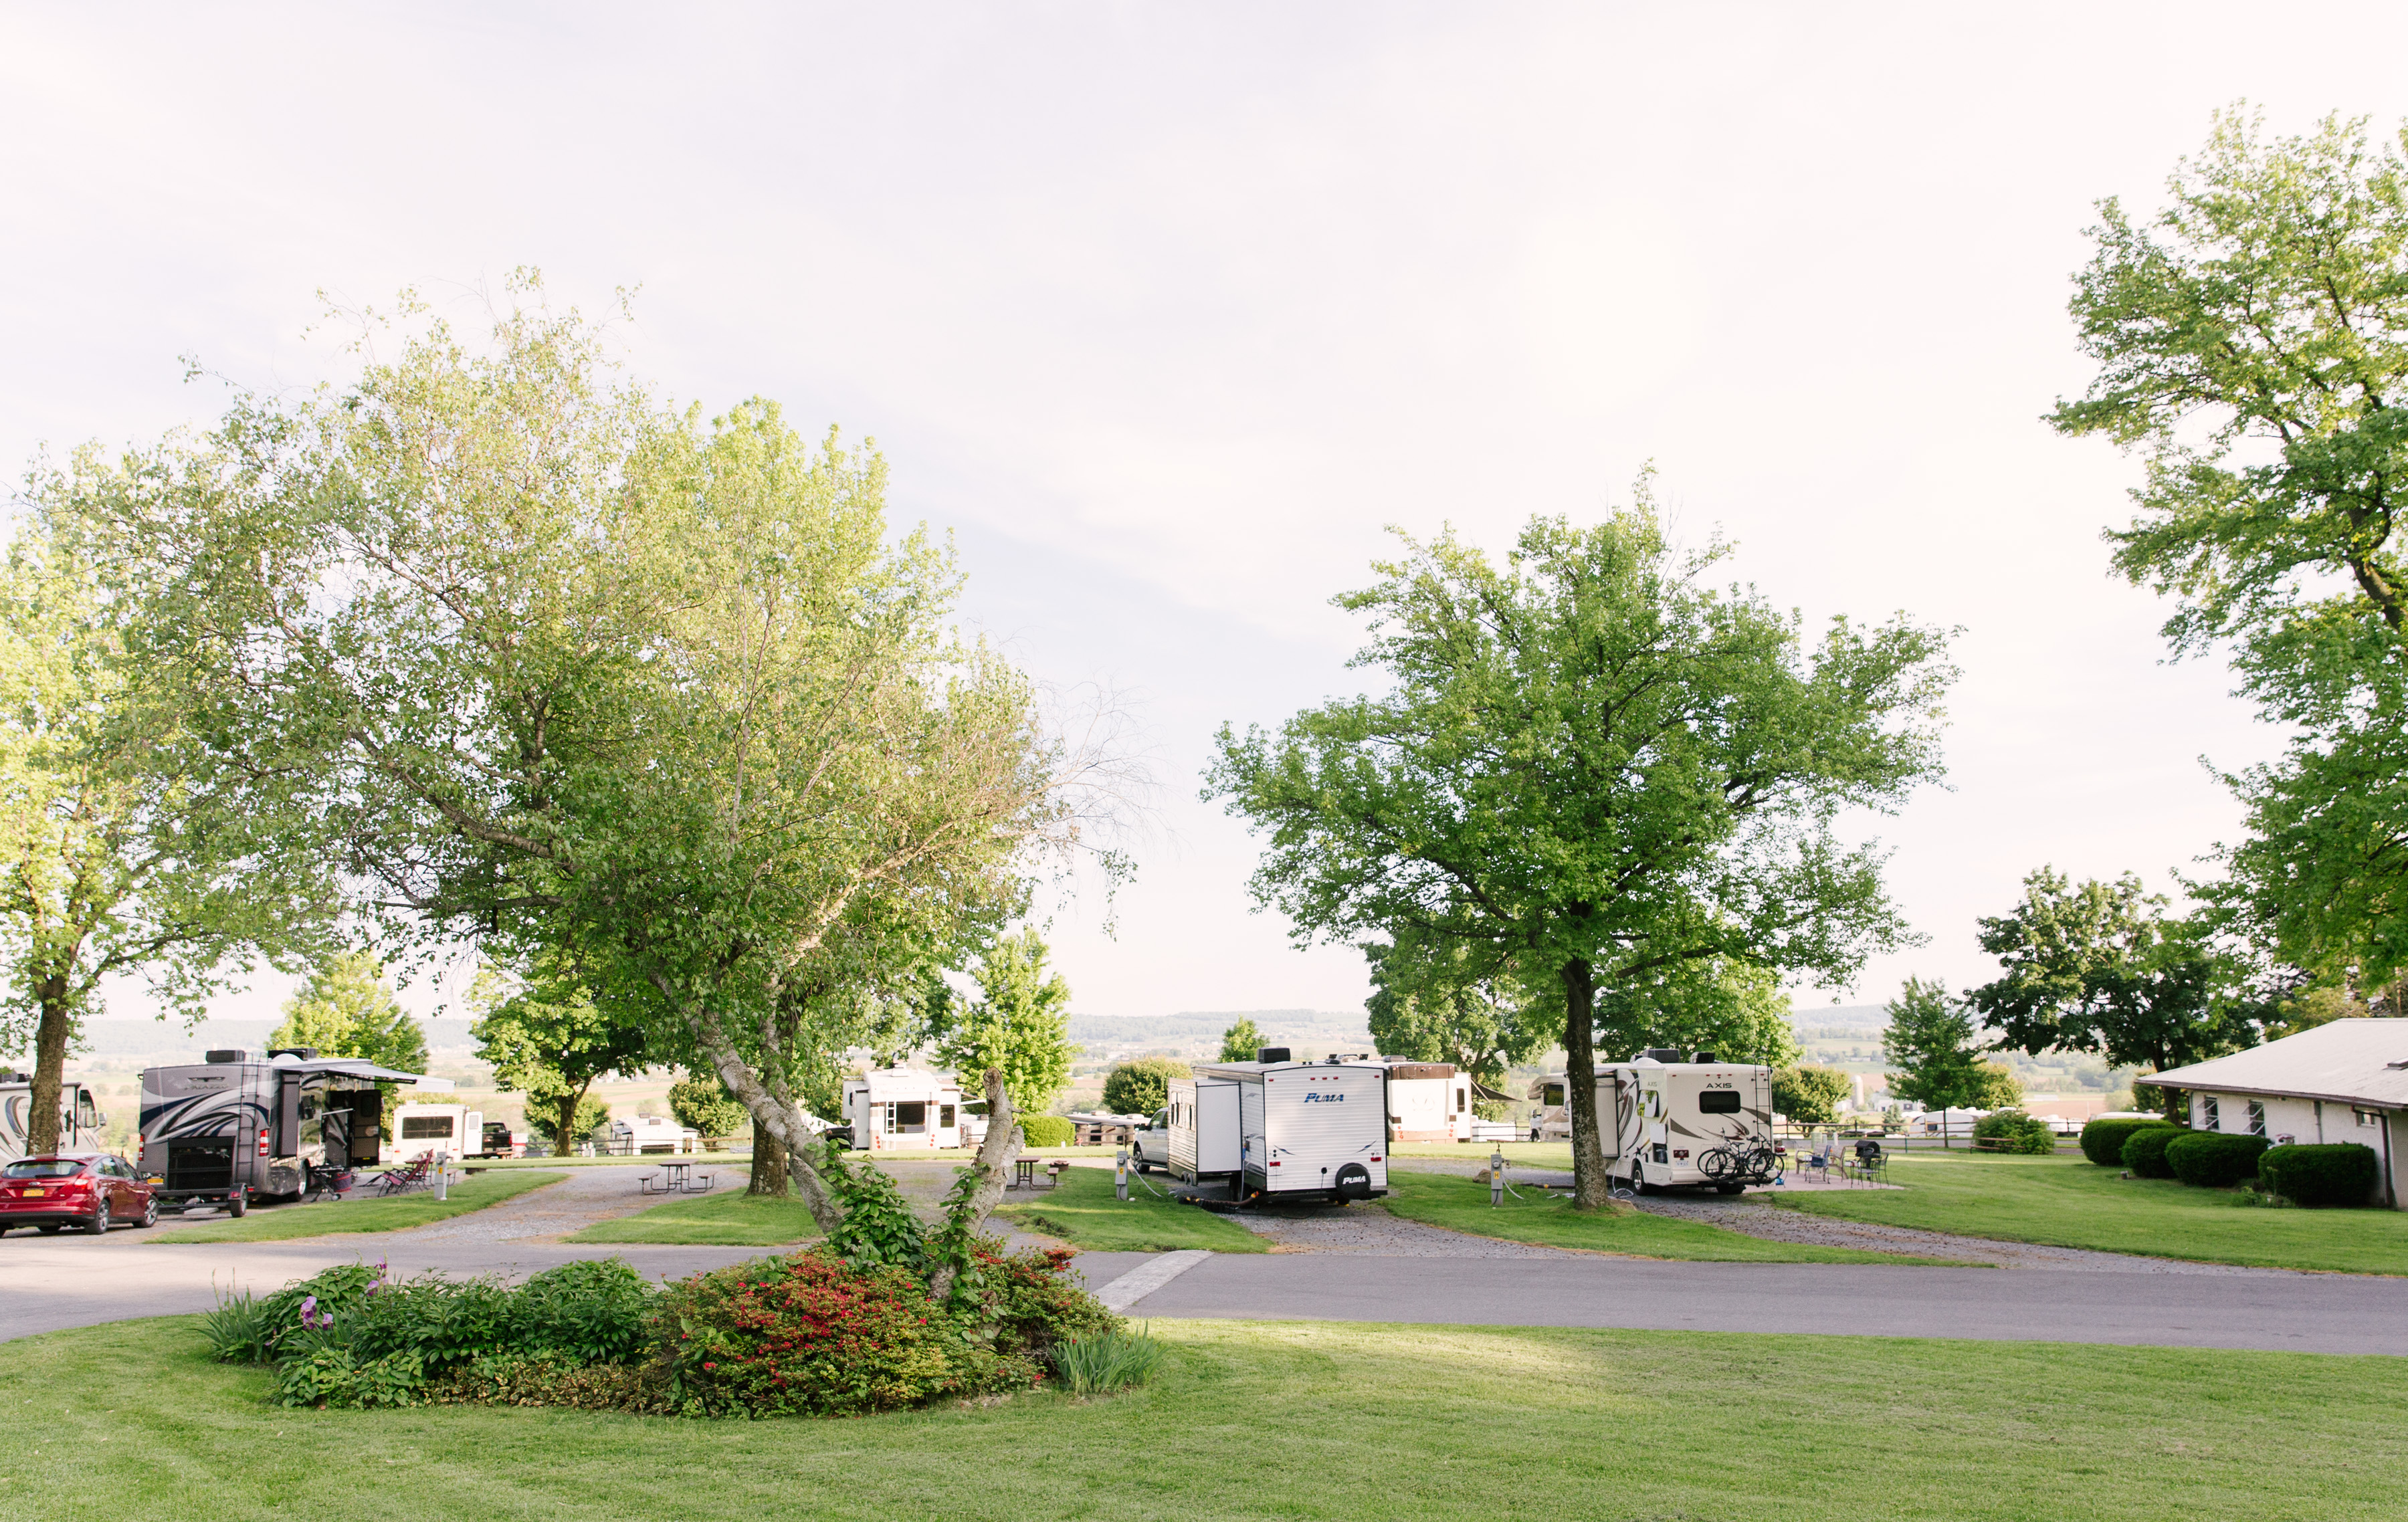 New Holland, Pennsylvania Campground | Lancaster / New